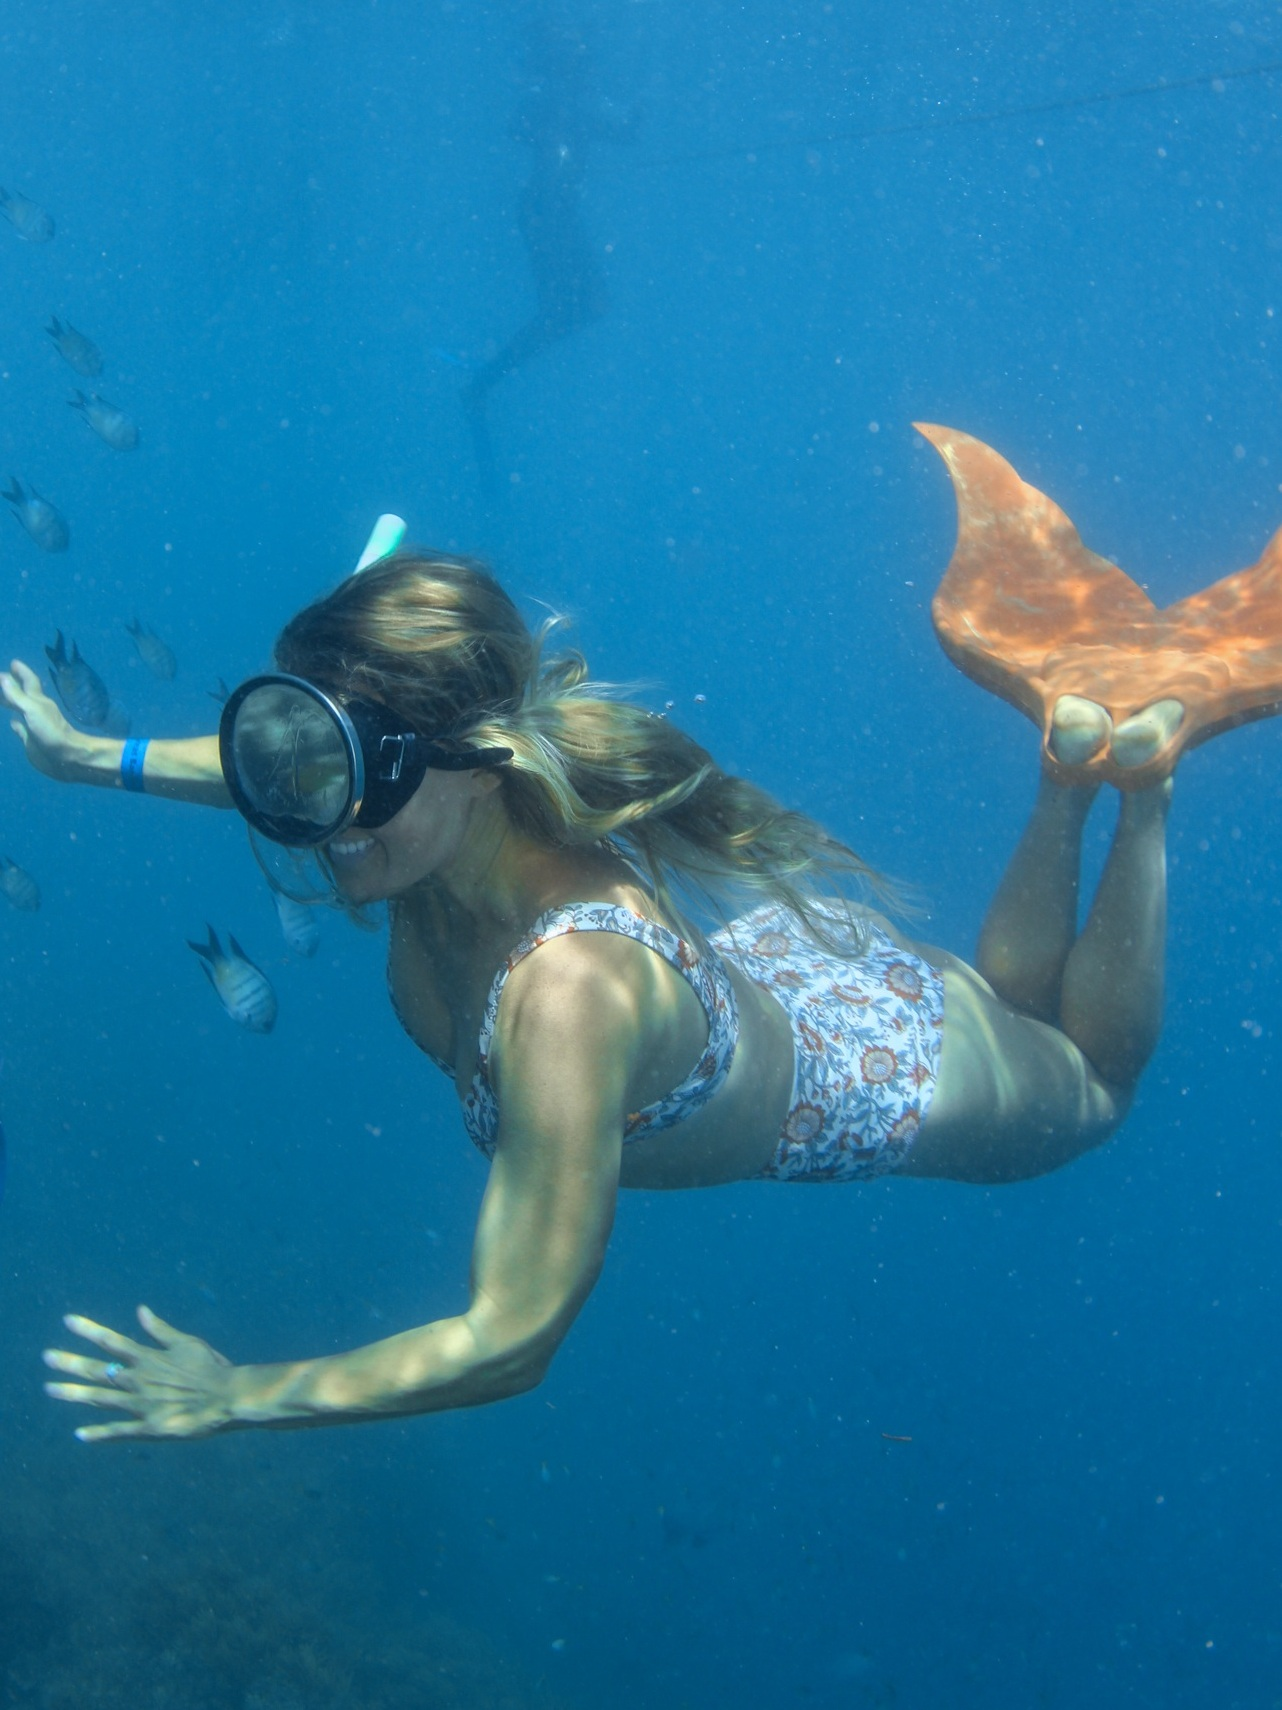 Kate Nelson (Plastic Free Mermaid) - On why she quit plastic and how you can too